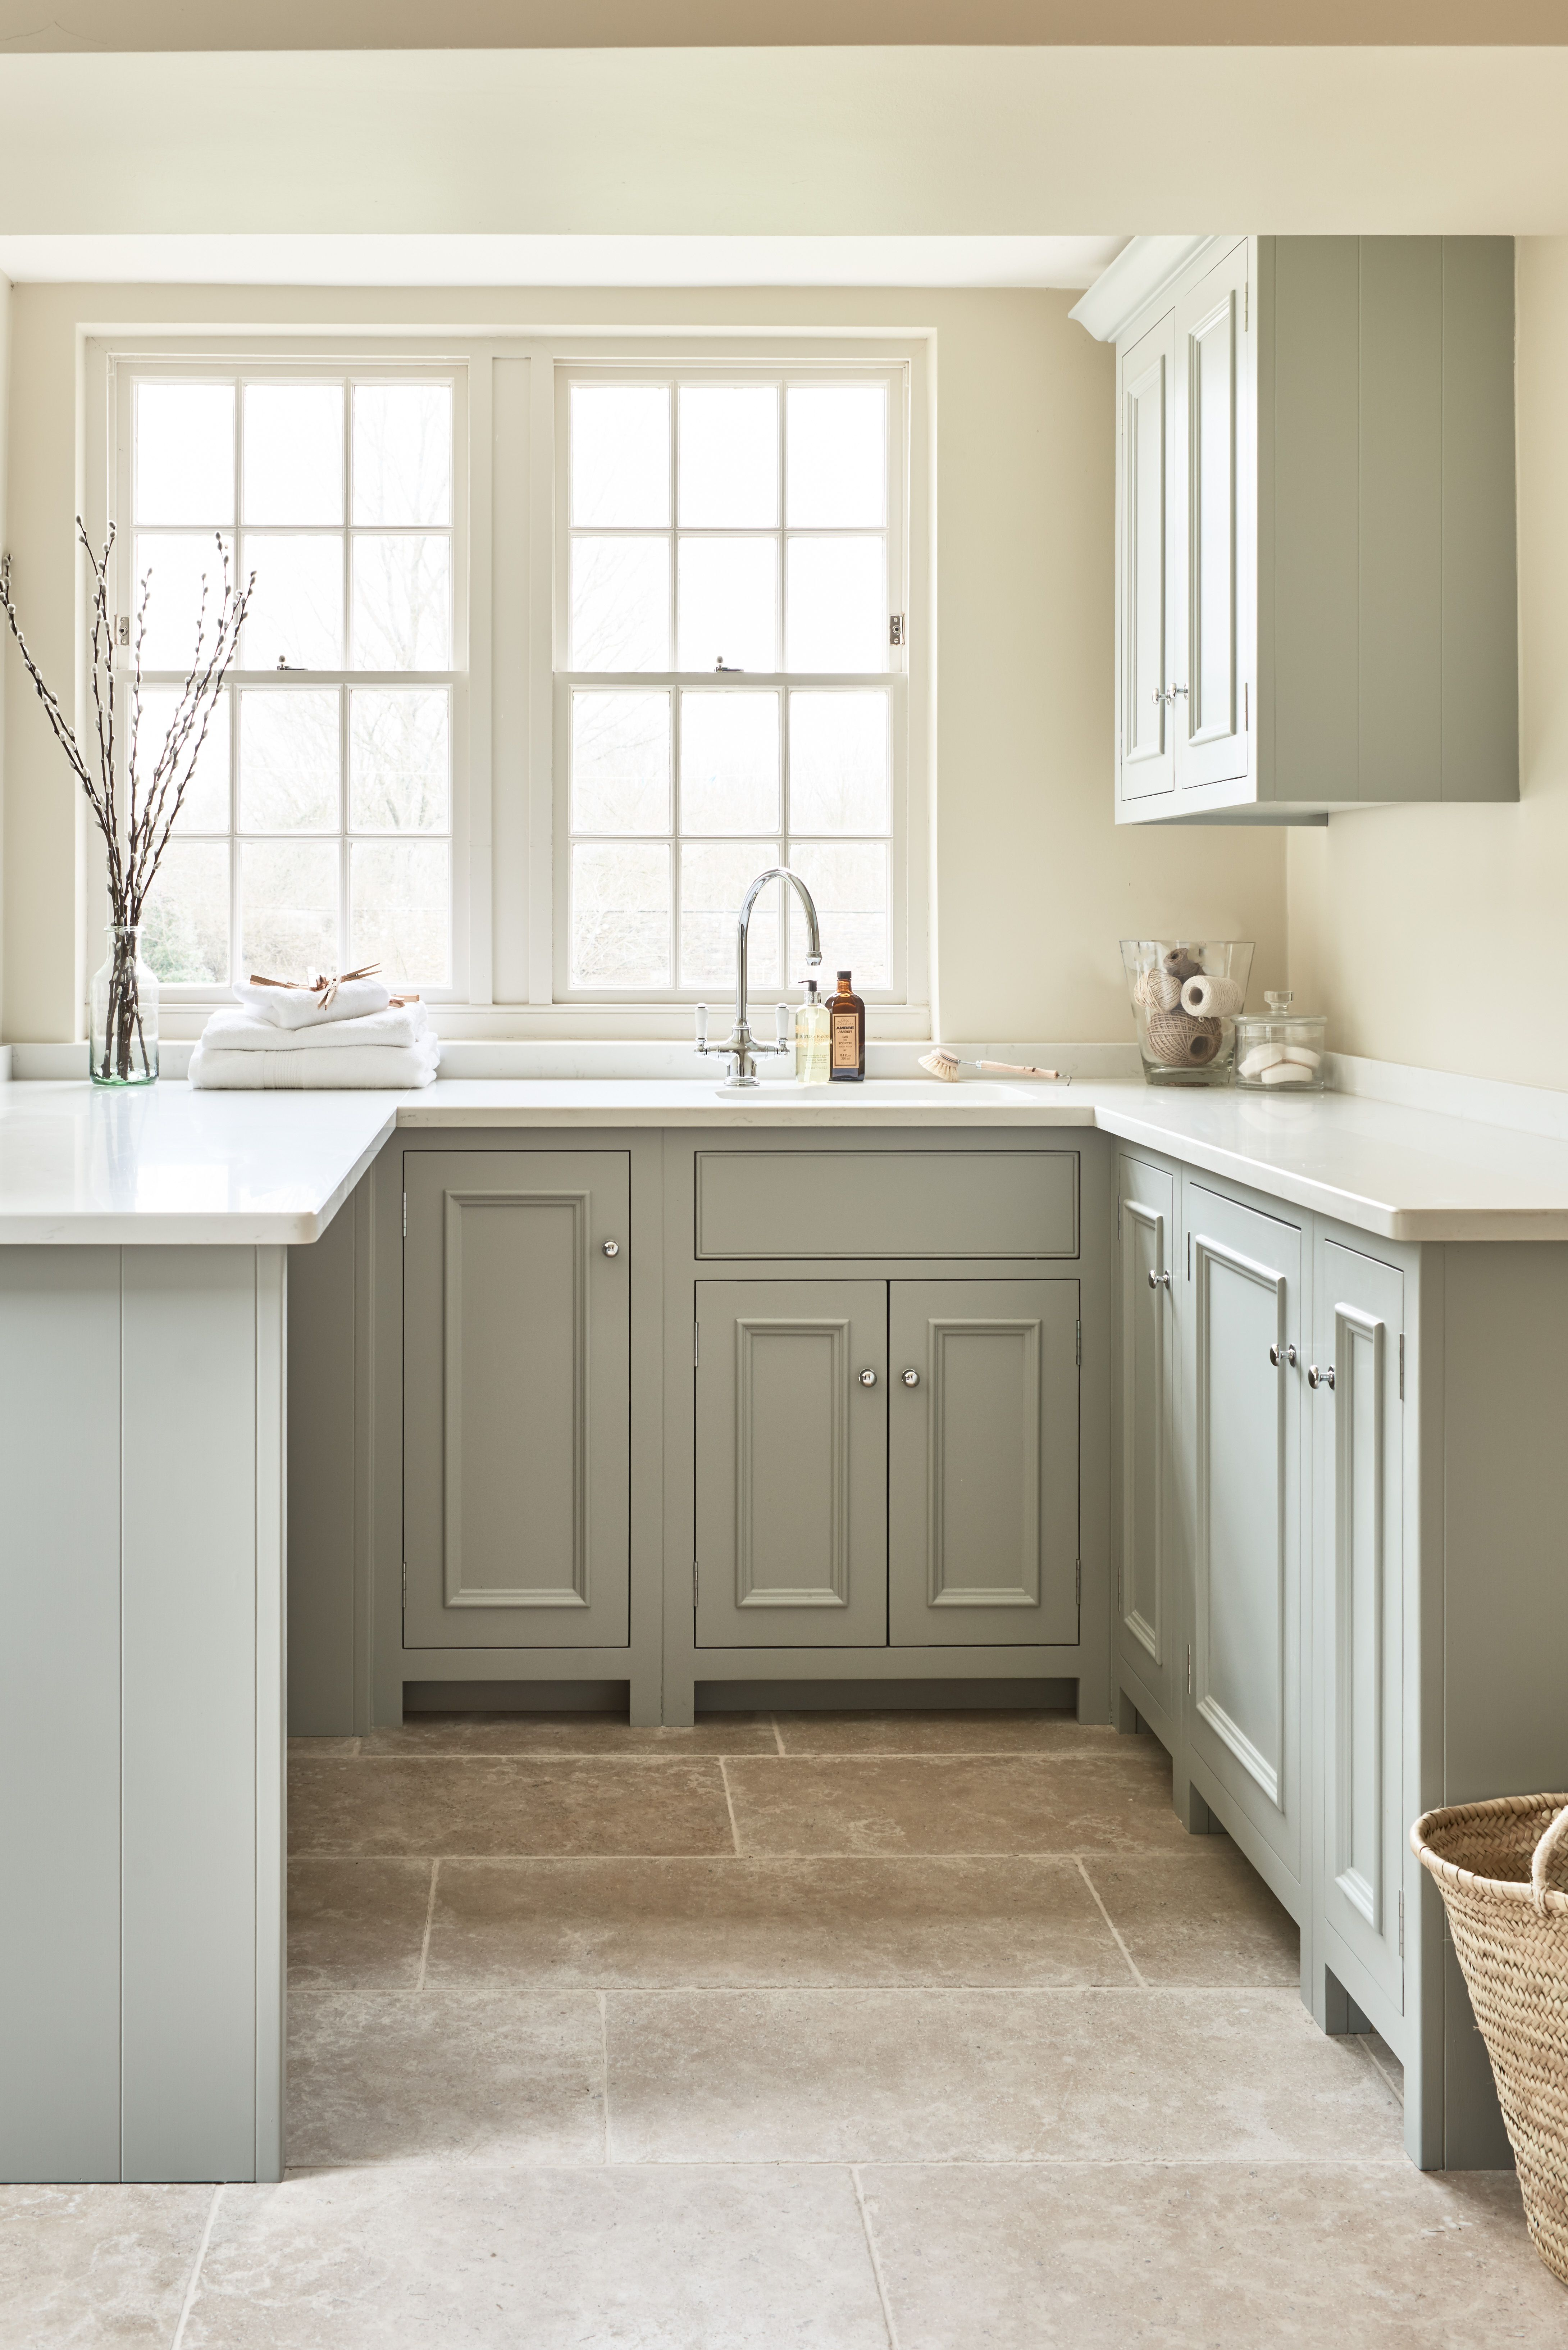 Kitchen designed by Sims Hilditch for the Cotswold Country House